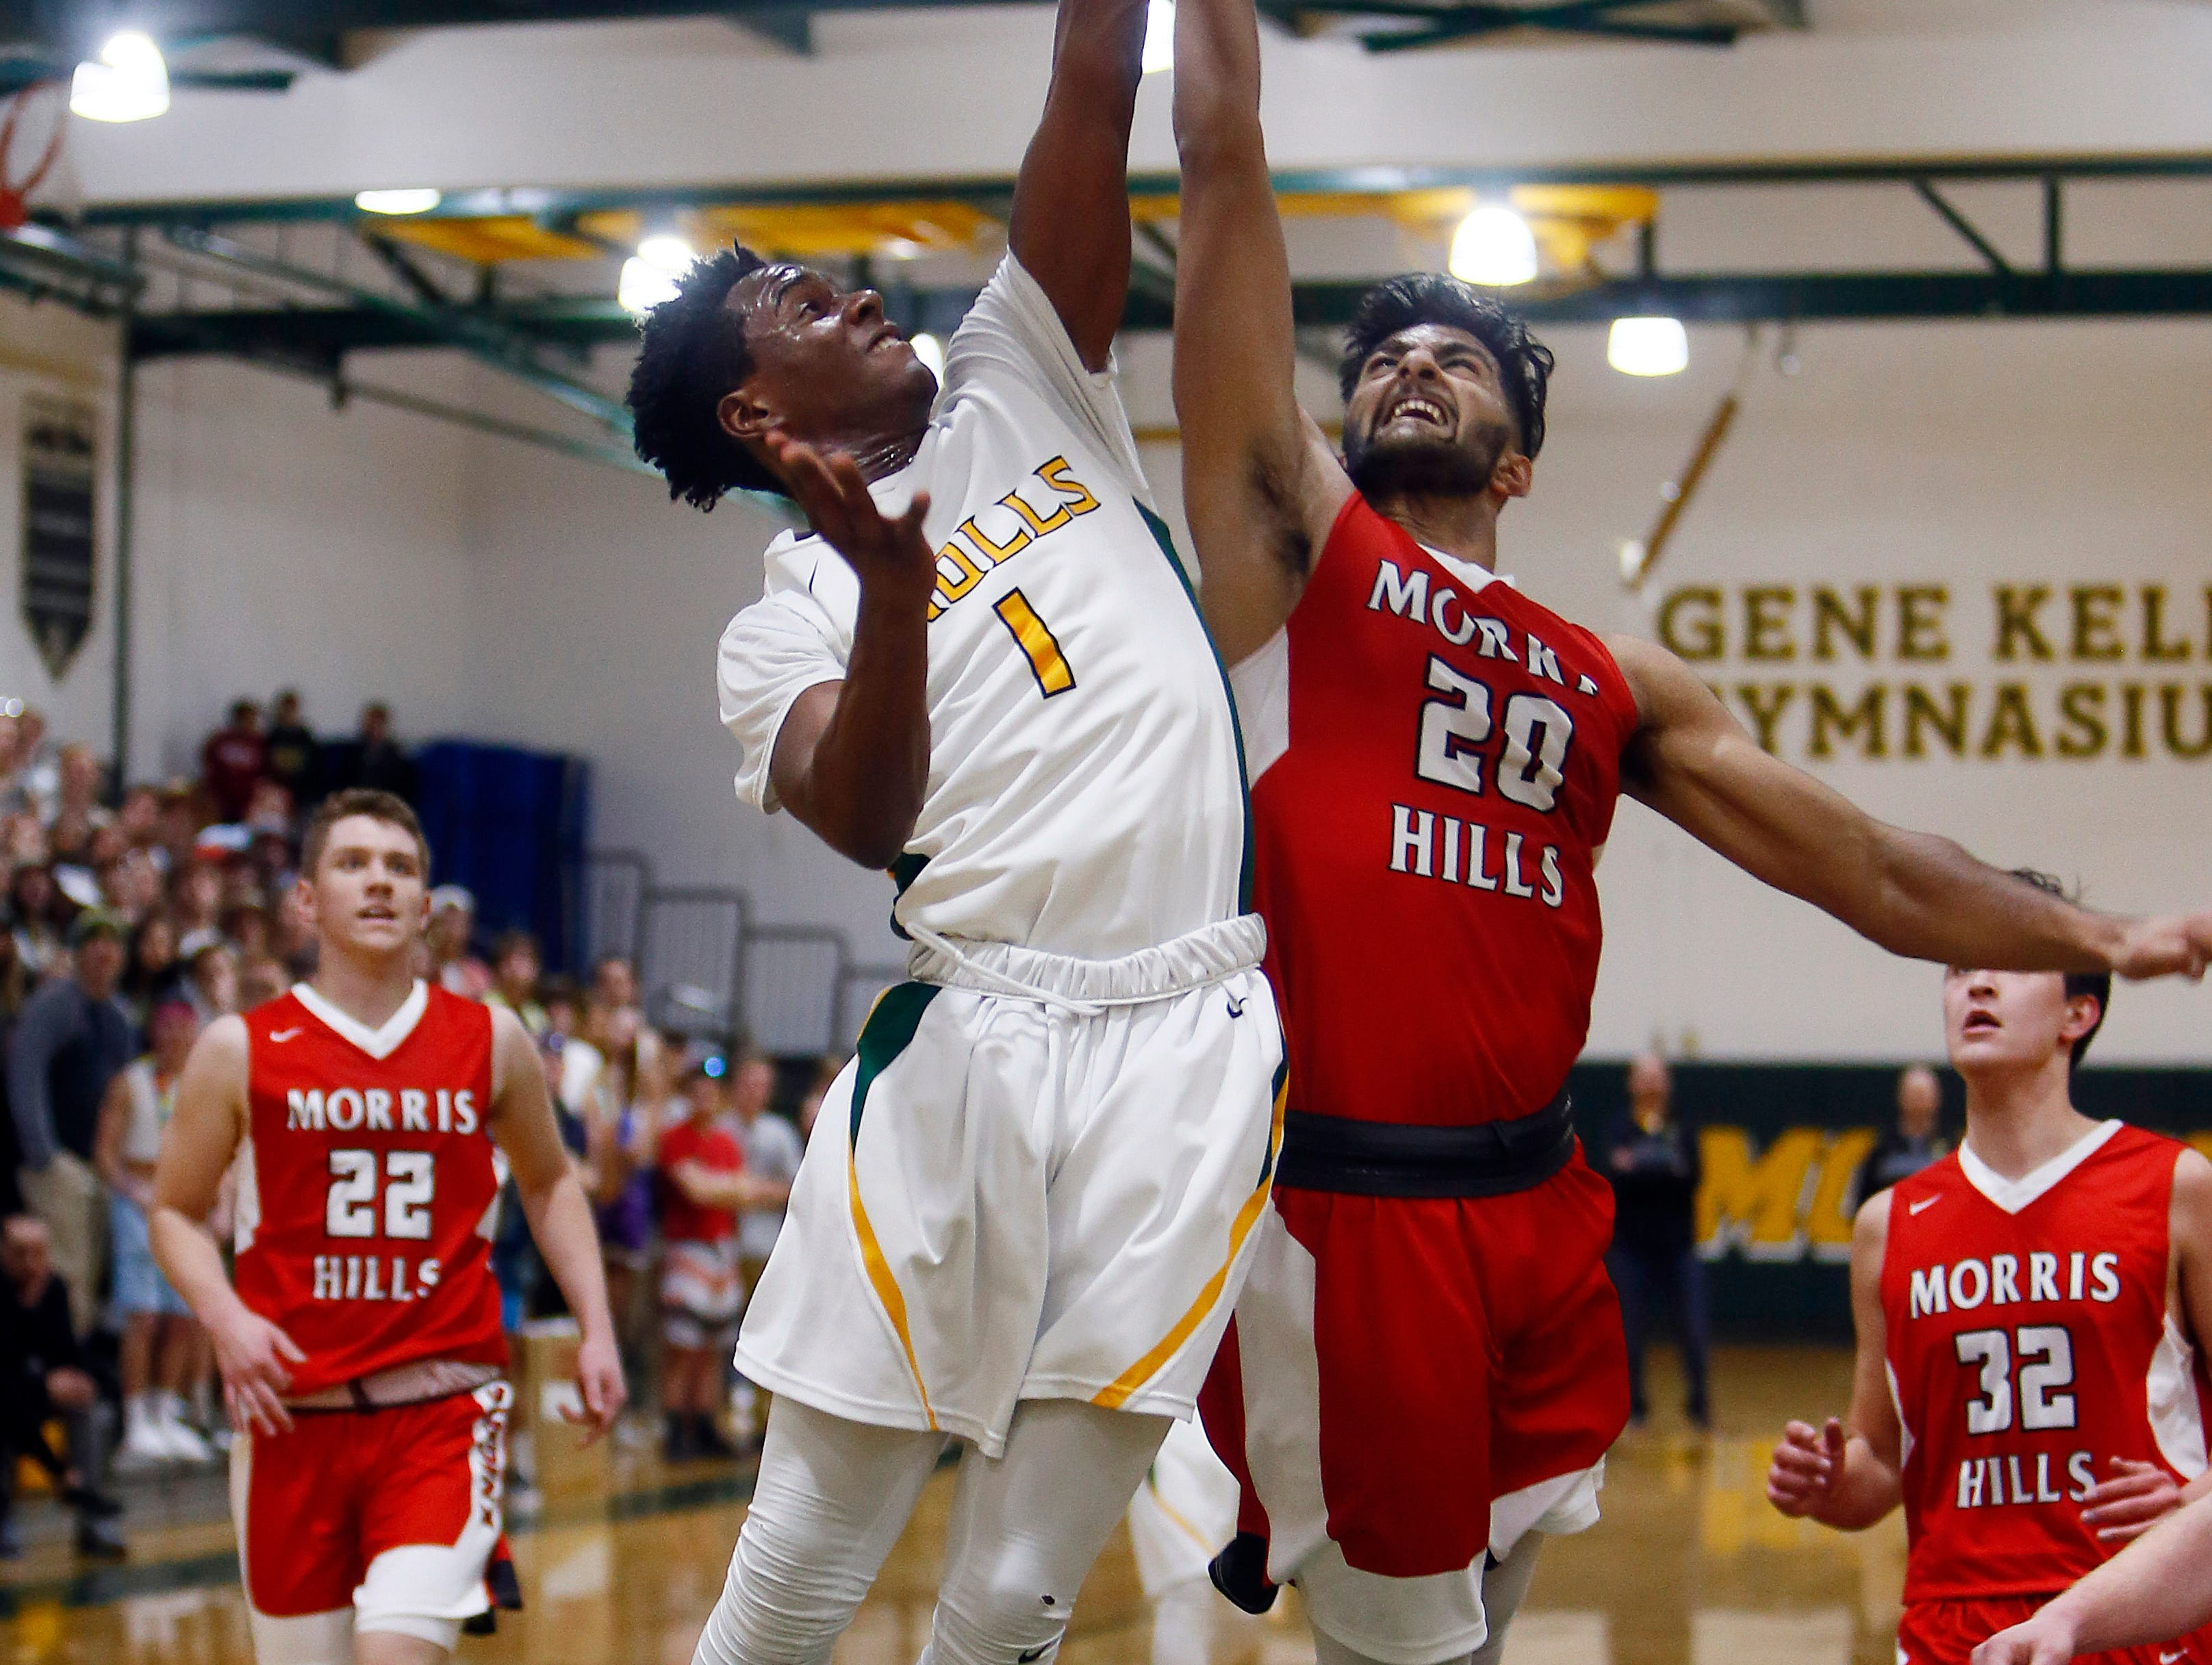 Morris Knolls Kareem Paton goes to the hoop for two, fouled by Morris Hills Umer Khawaja during their boys basketball matchup. January 30, 2018. Denville, NJ.